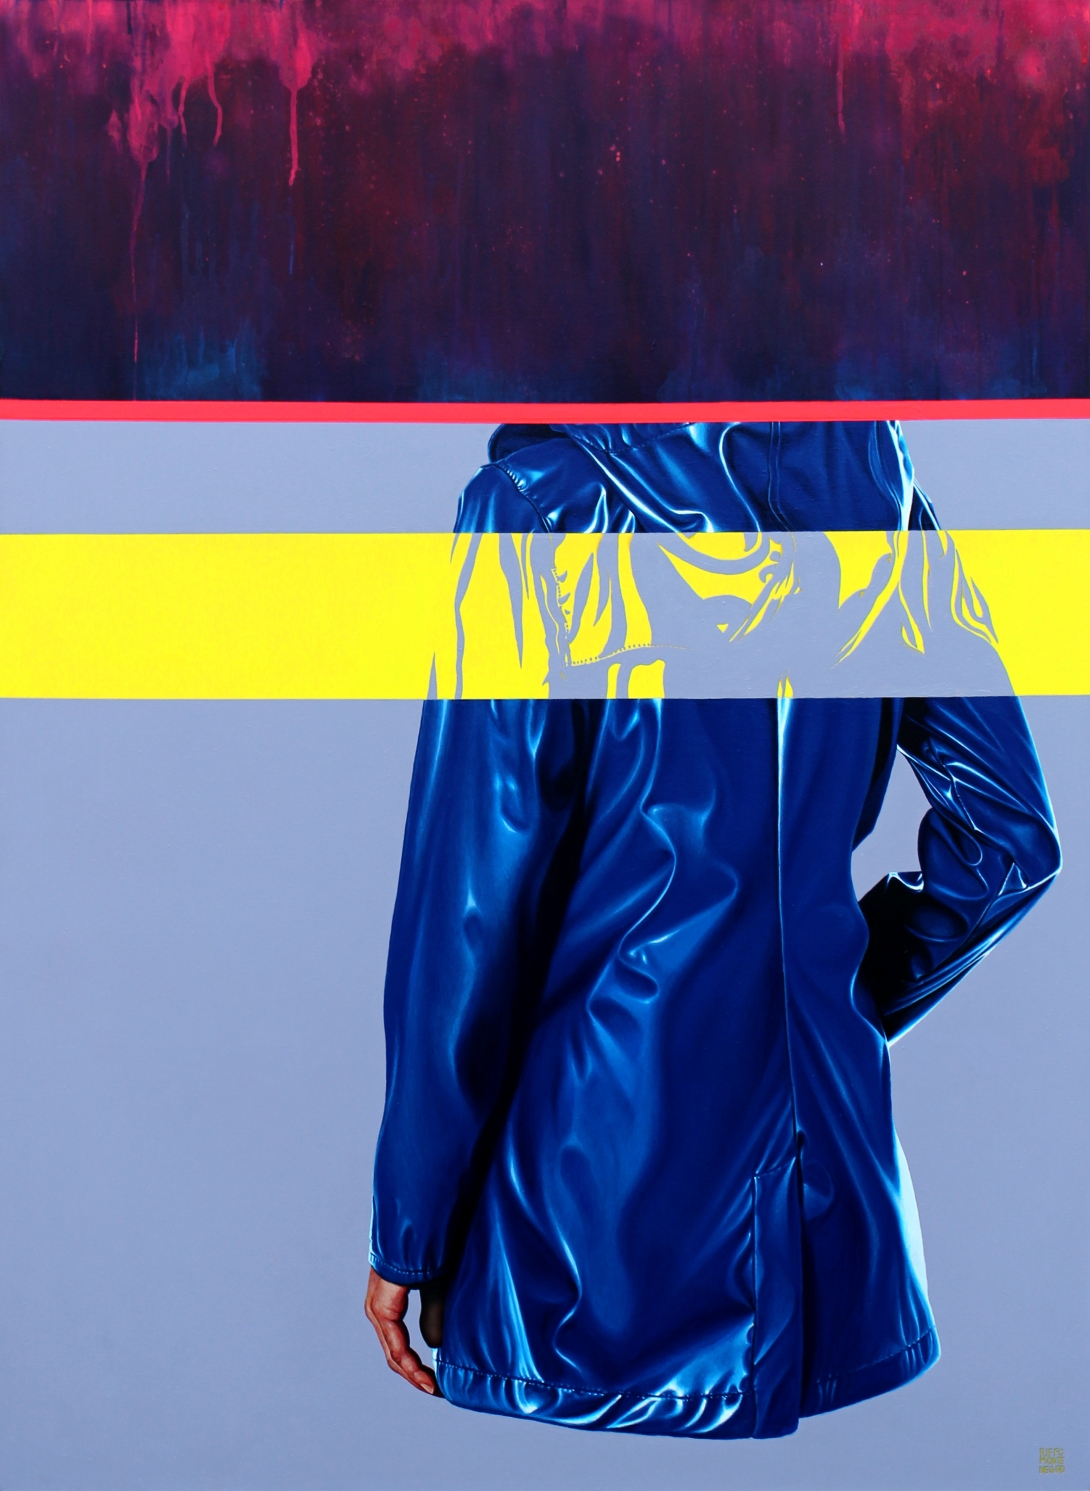 srm-untitled-raincoat14--150x110cm-oct-2019